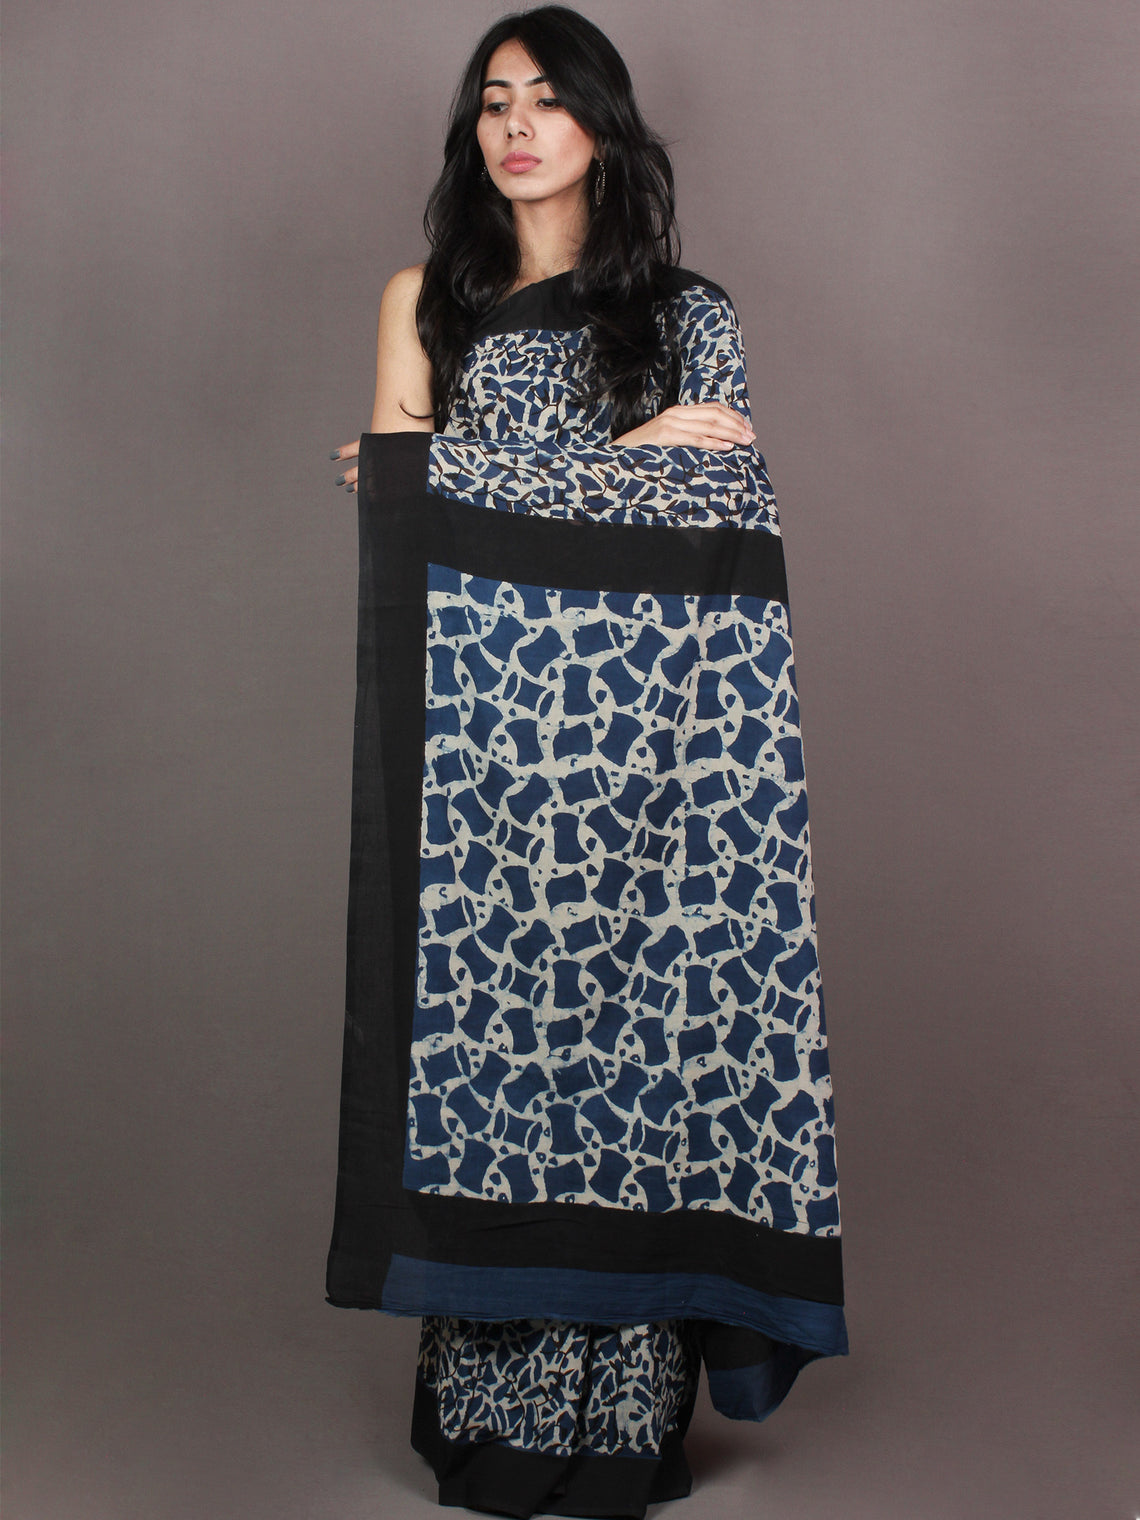 Indigo White Black Bagru Dabu Hand Block Printed in Cotton Mul Saree With Black Border - S03170873